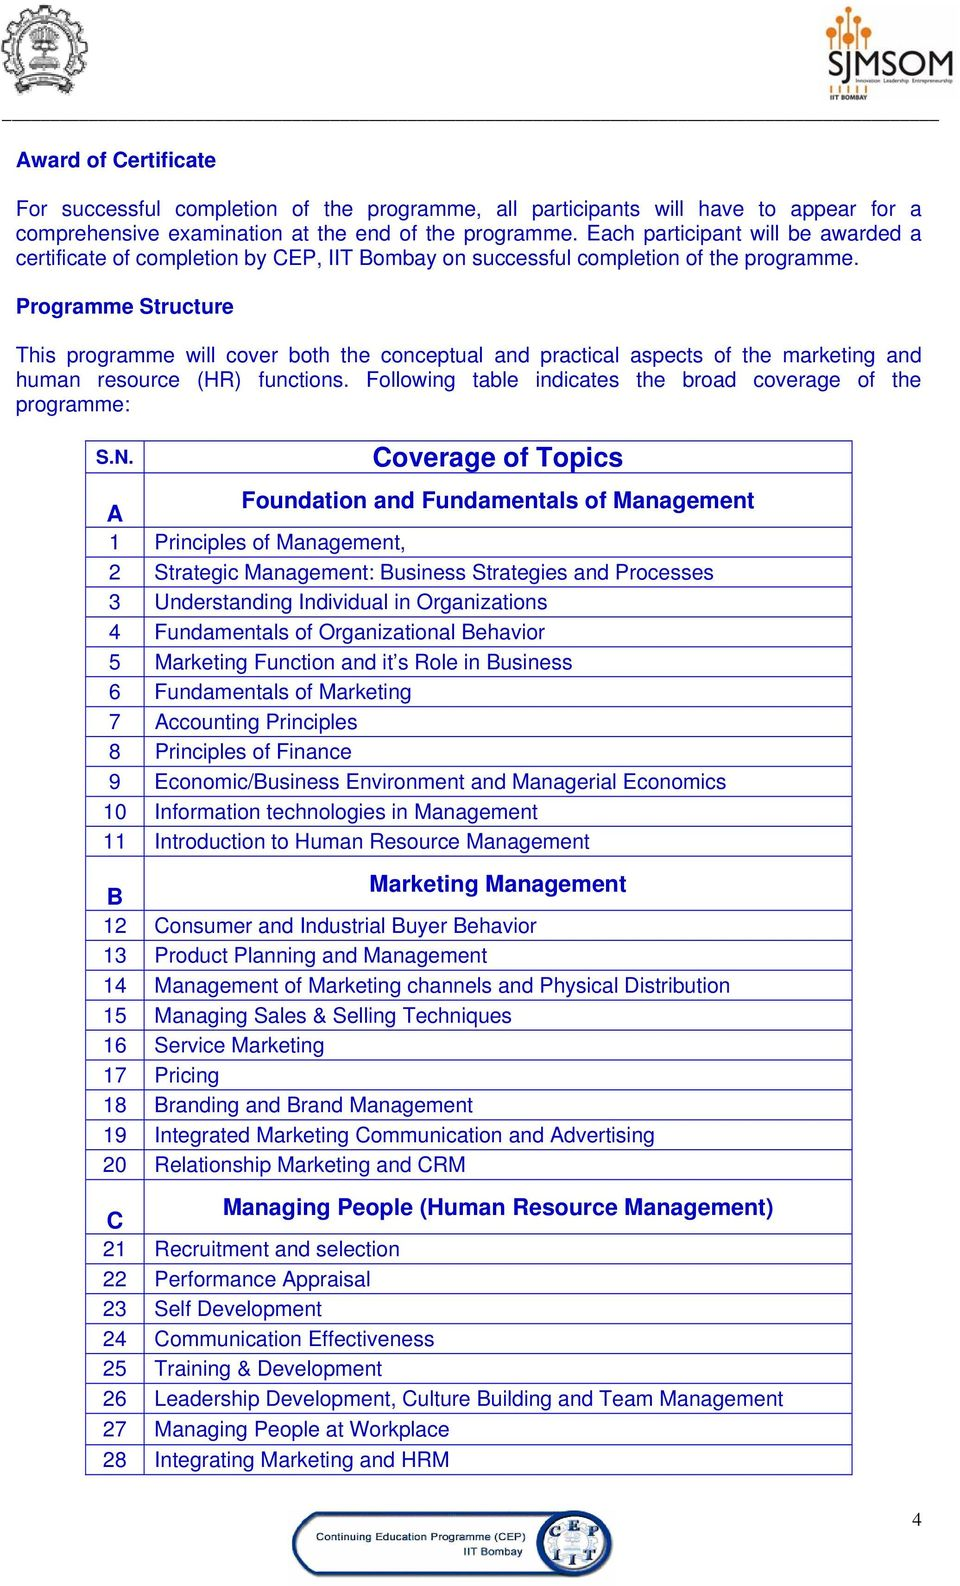 Programme Structure This programme will cover both the conceptual and practical aspects of the marketing and human resource (HR) functions.